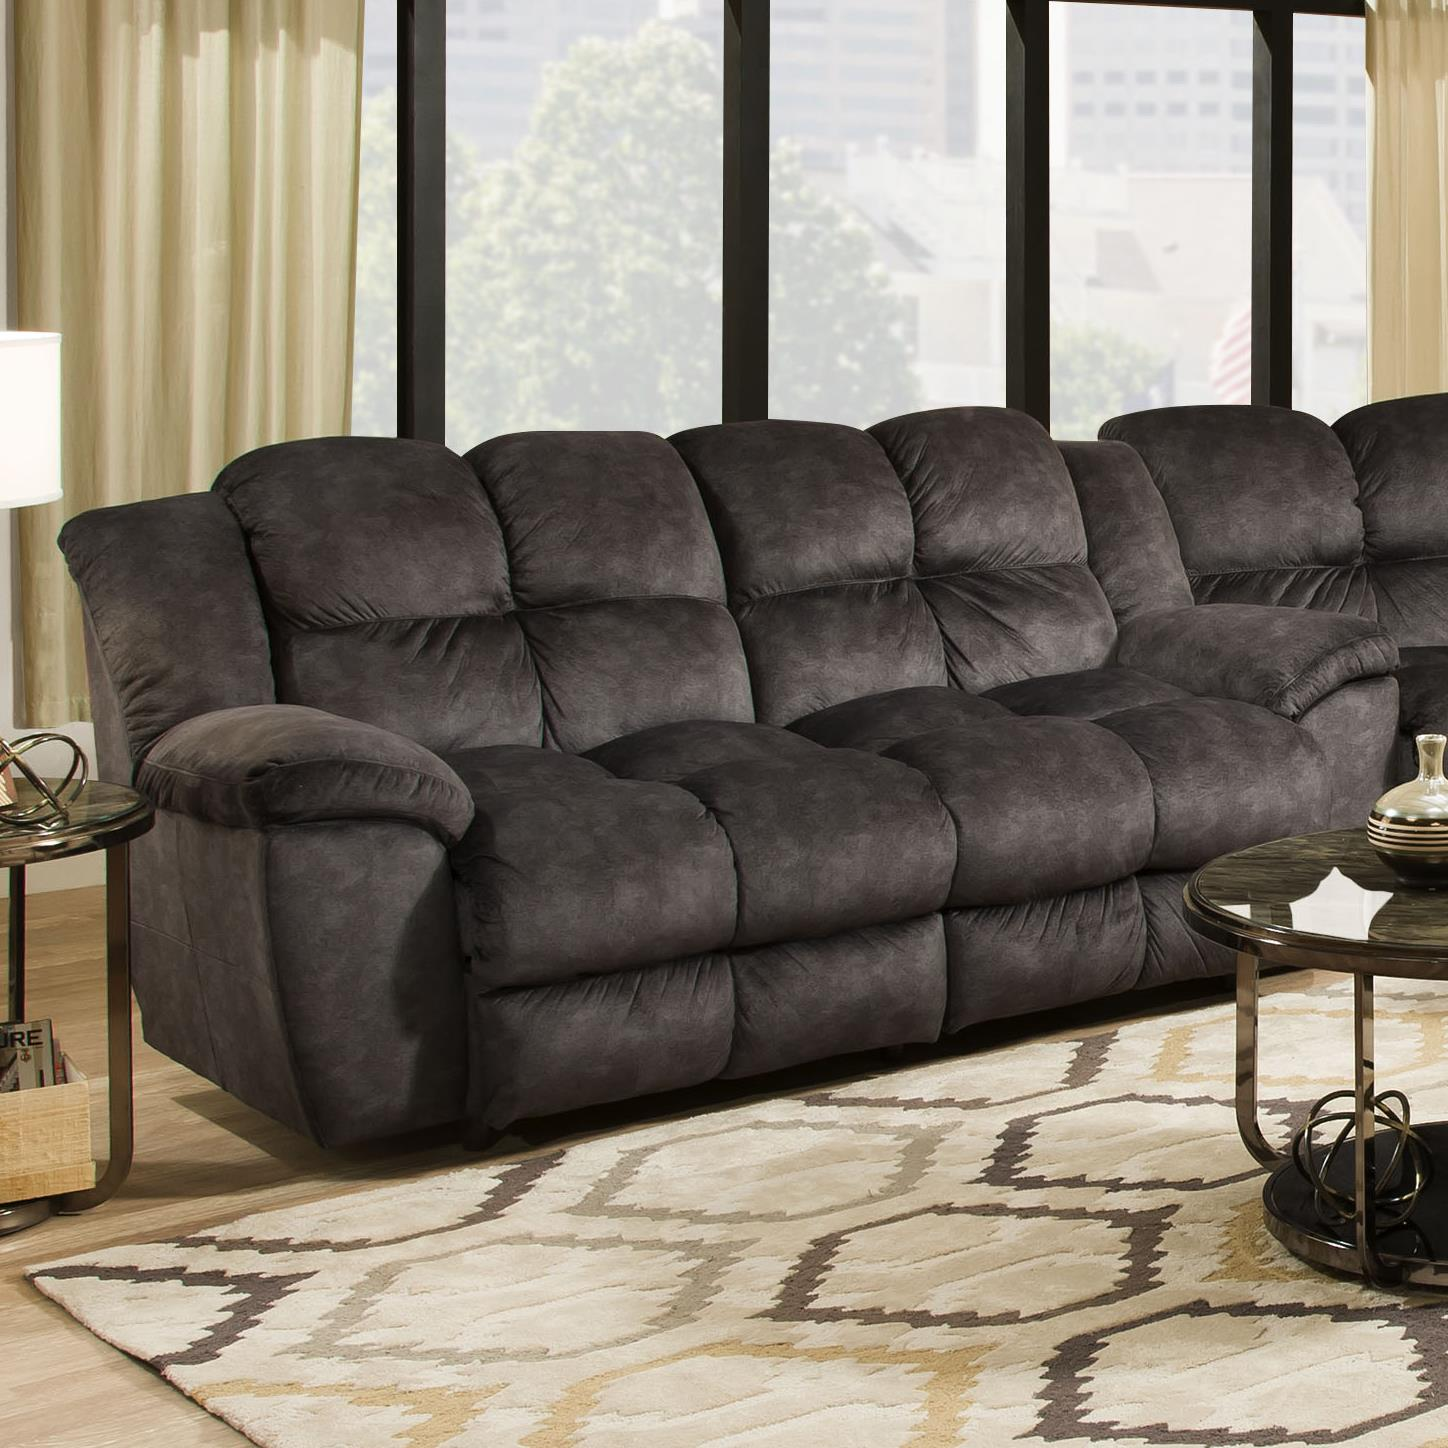 Franklin 461 Power Double Reclining 2 Seat Sofa - Item Number: 46143-8415-03